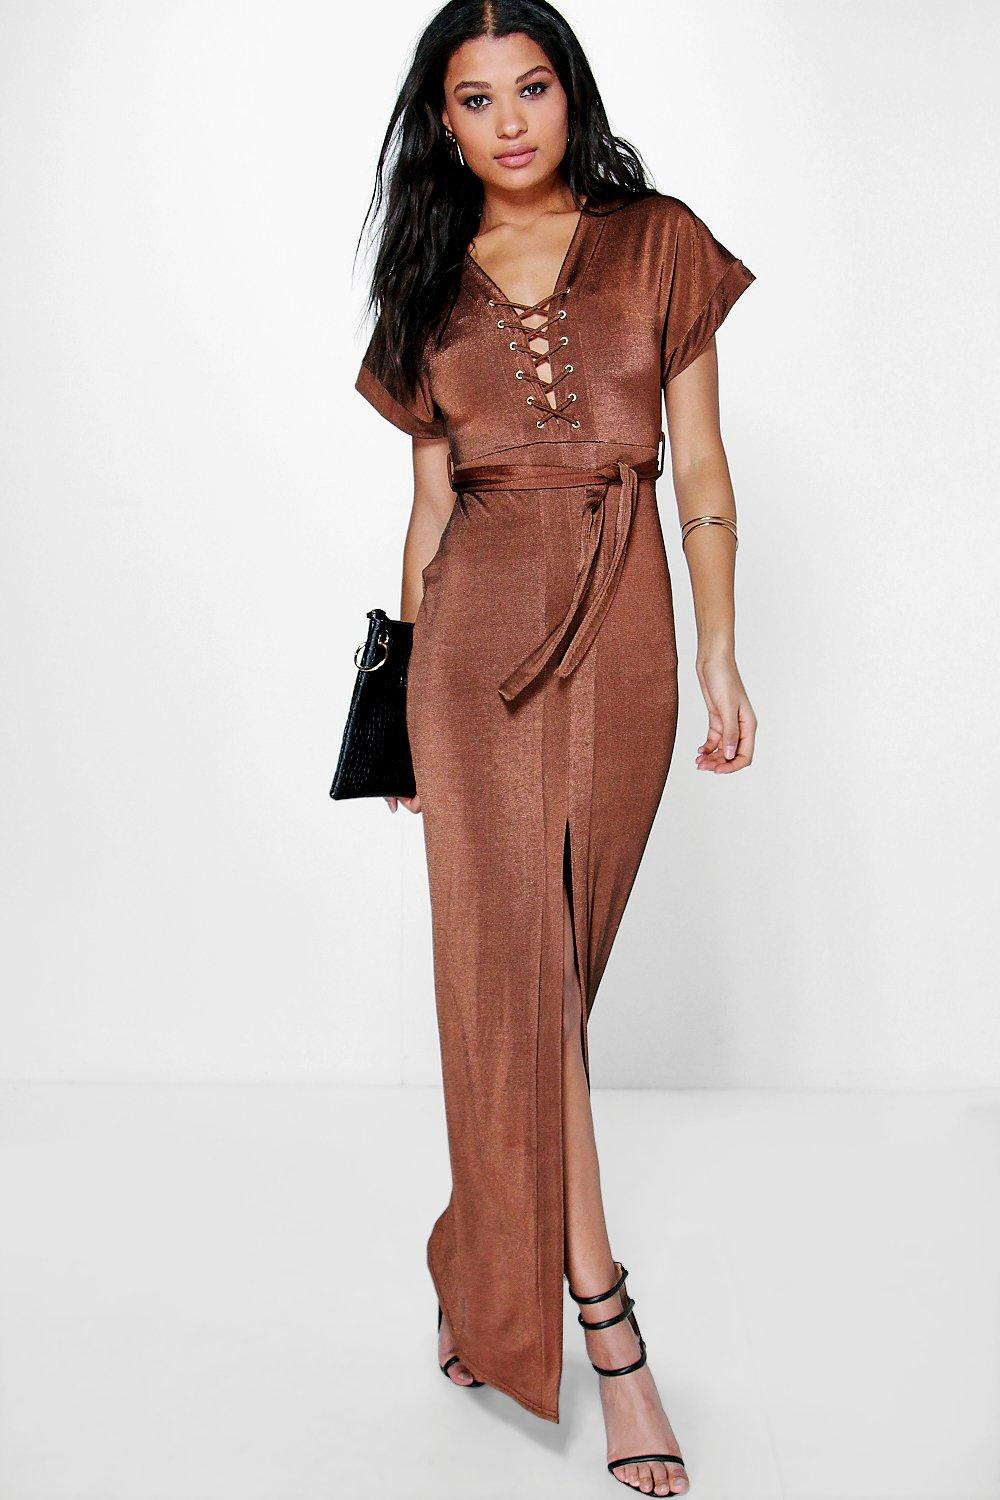 Vanessa Lace Up Belted Split Skirt Maxi Dress